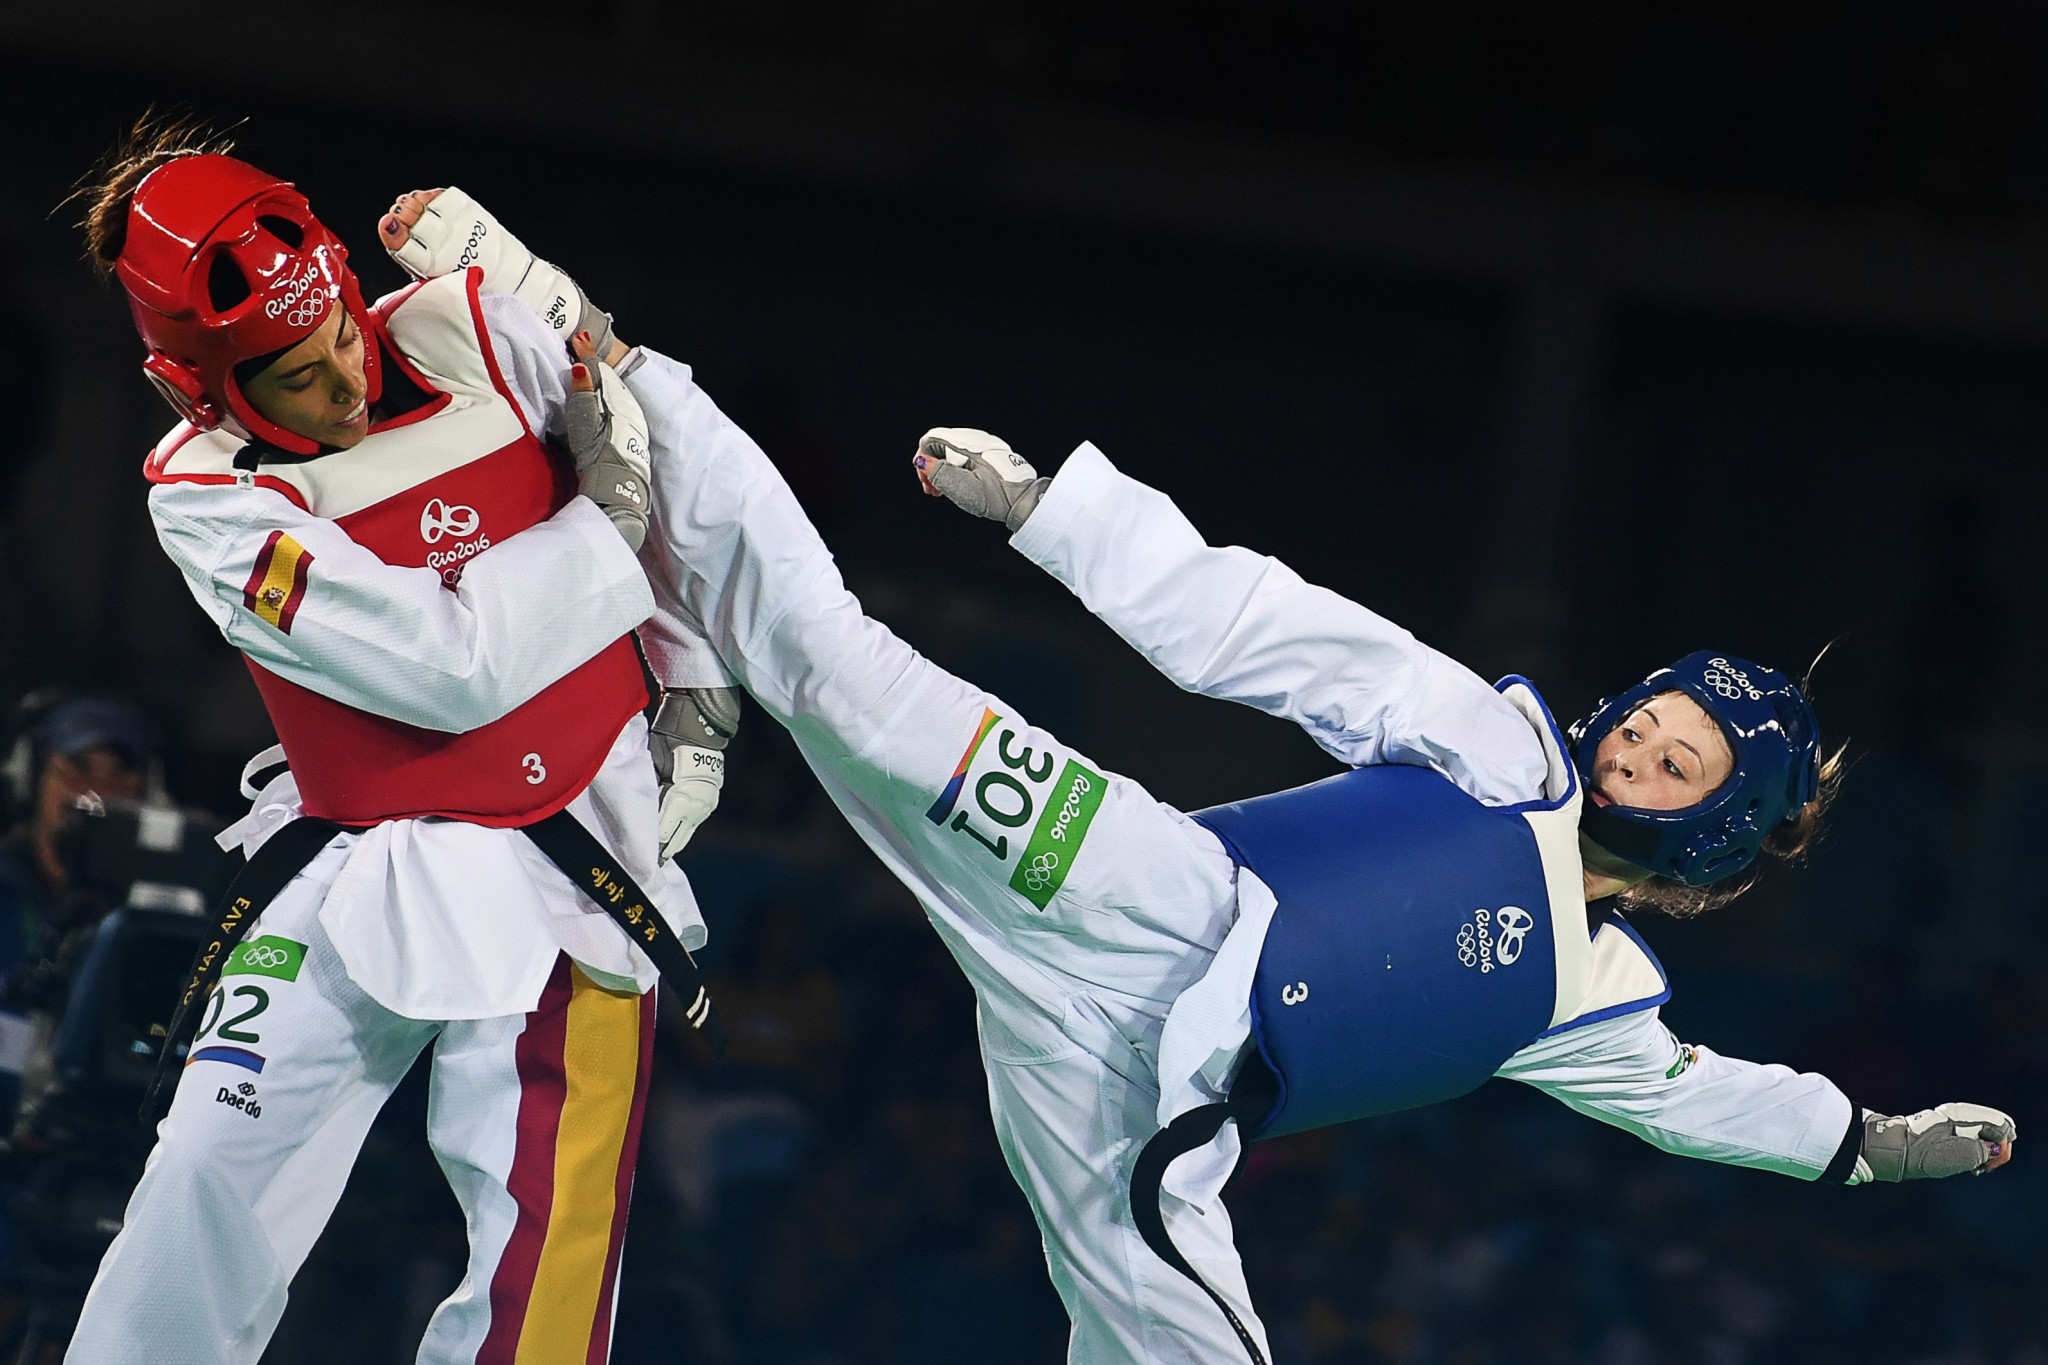 Double Olympic champion Jade Jones is among the British athletes set to compete at the World Taekwondo Grand Prix ©Getty Images